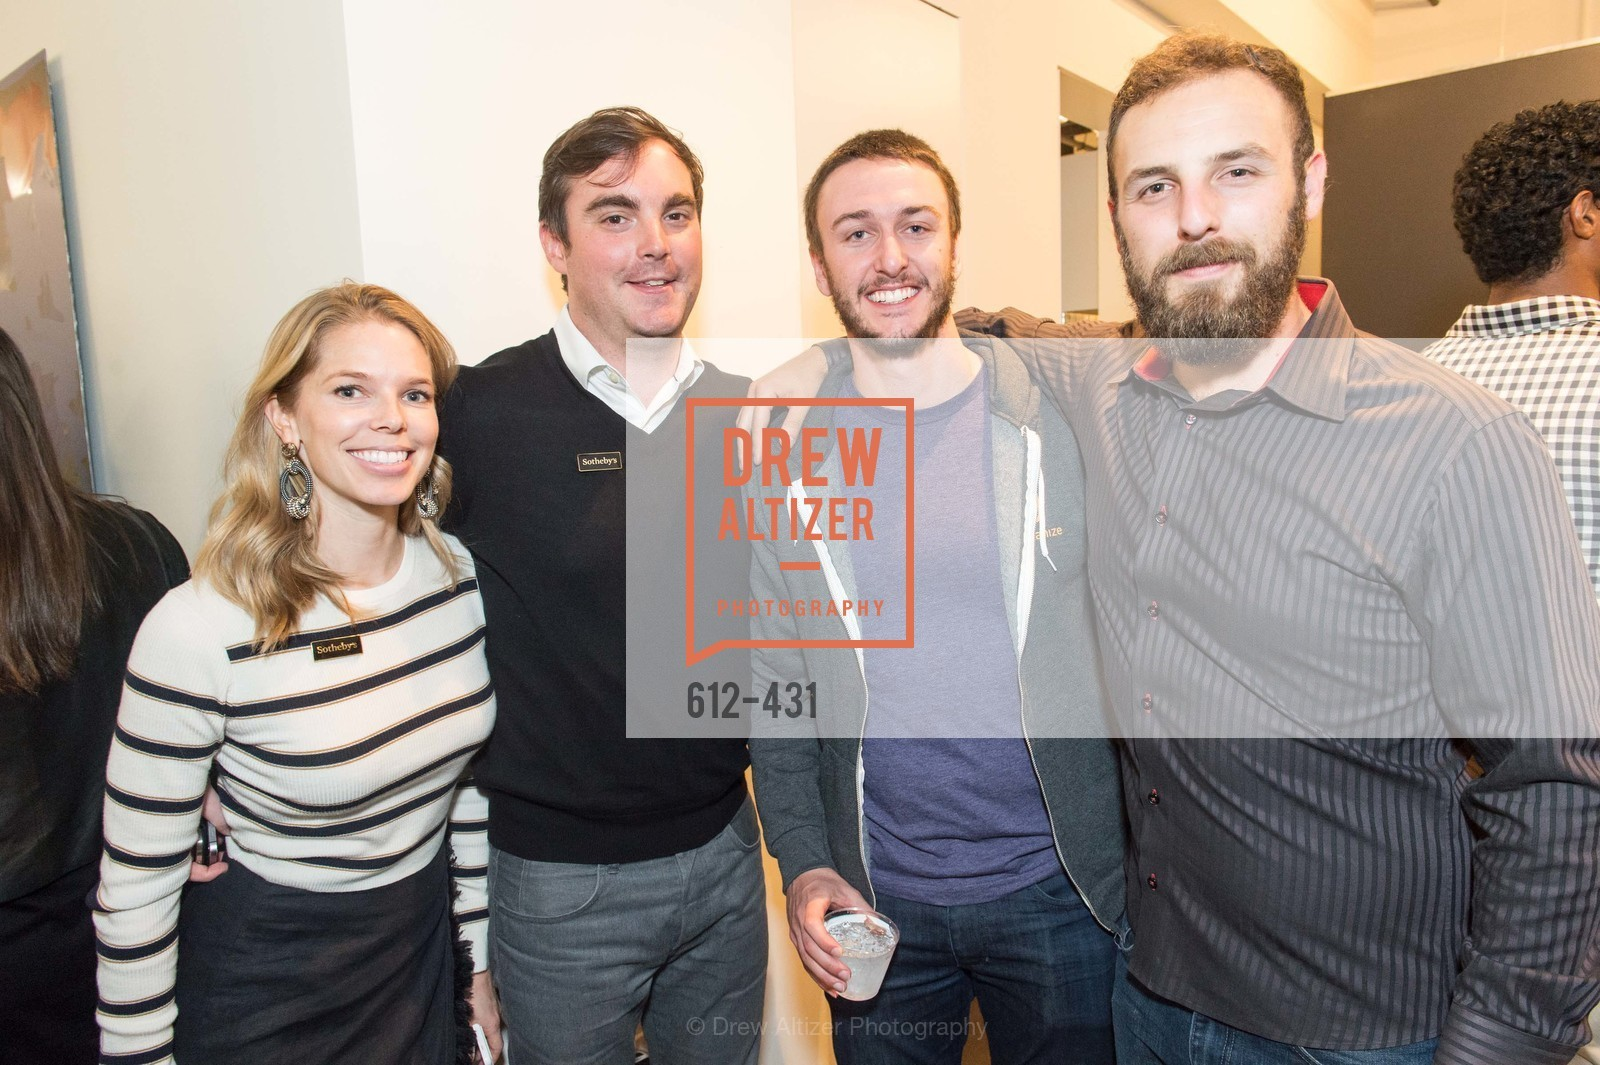 Cpurtney Kremers, Charles Moffett, Daniel Sherman, Artsy + Sotheby's Closing Party, Fused. 1401 16th Street, October 30th, 2015,Drew Altizer, Drew Altizer Photography, full-service agency, private events, San Francisco photographer, photographer california